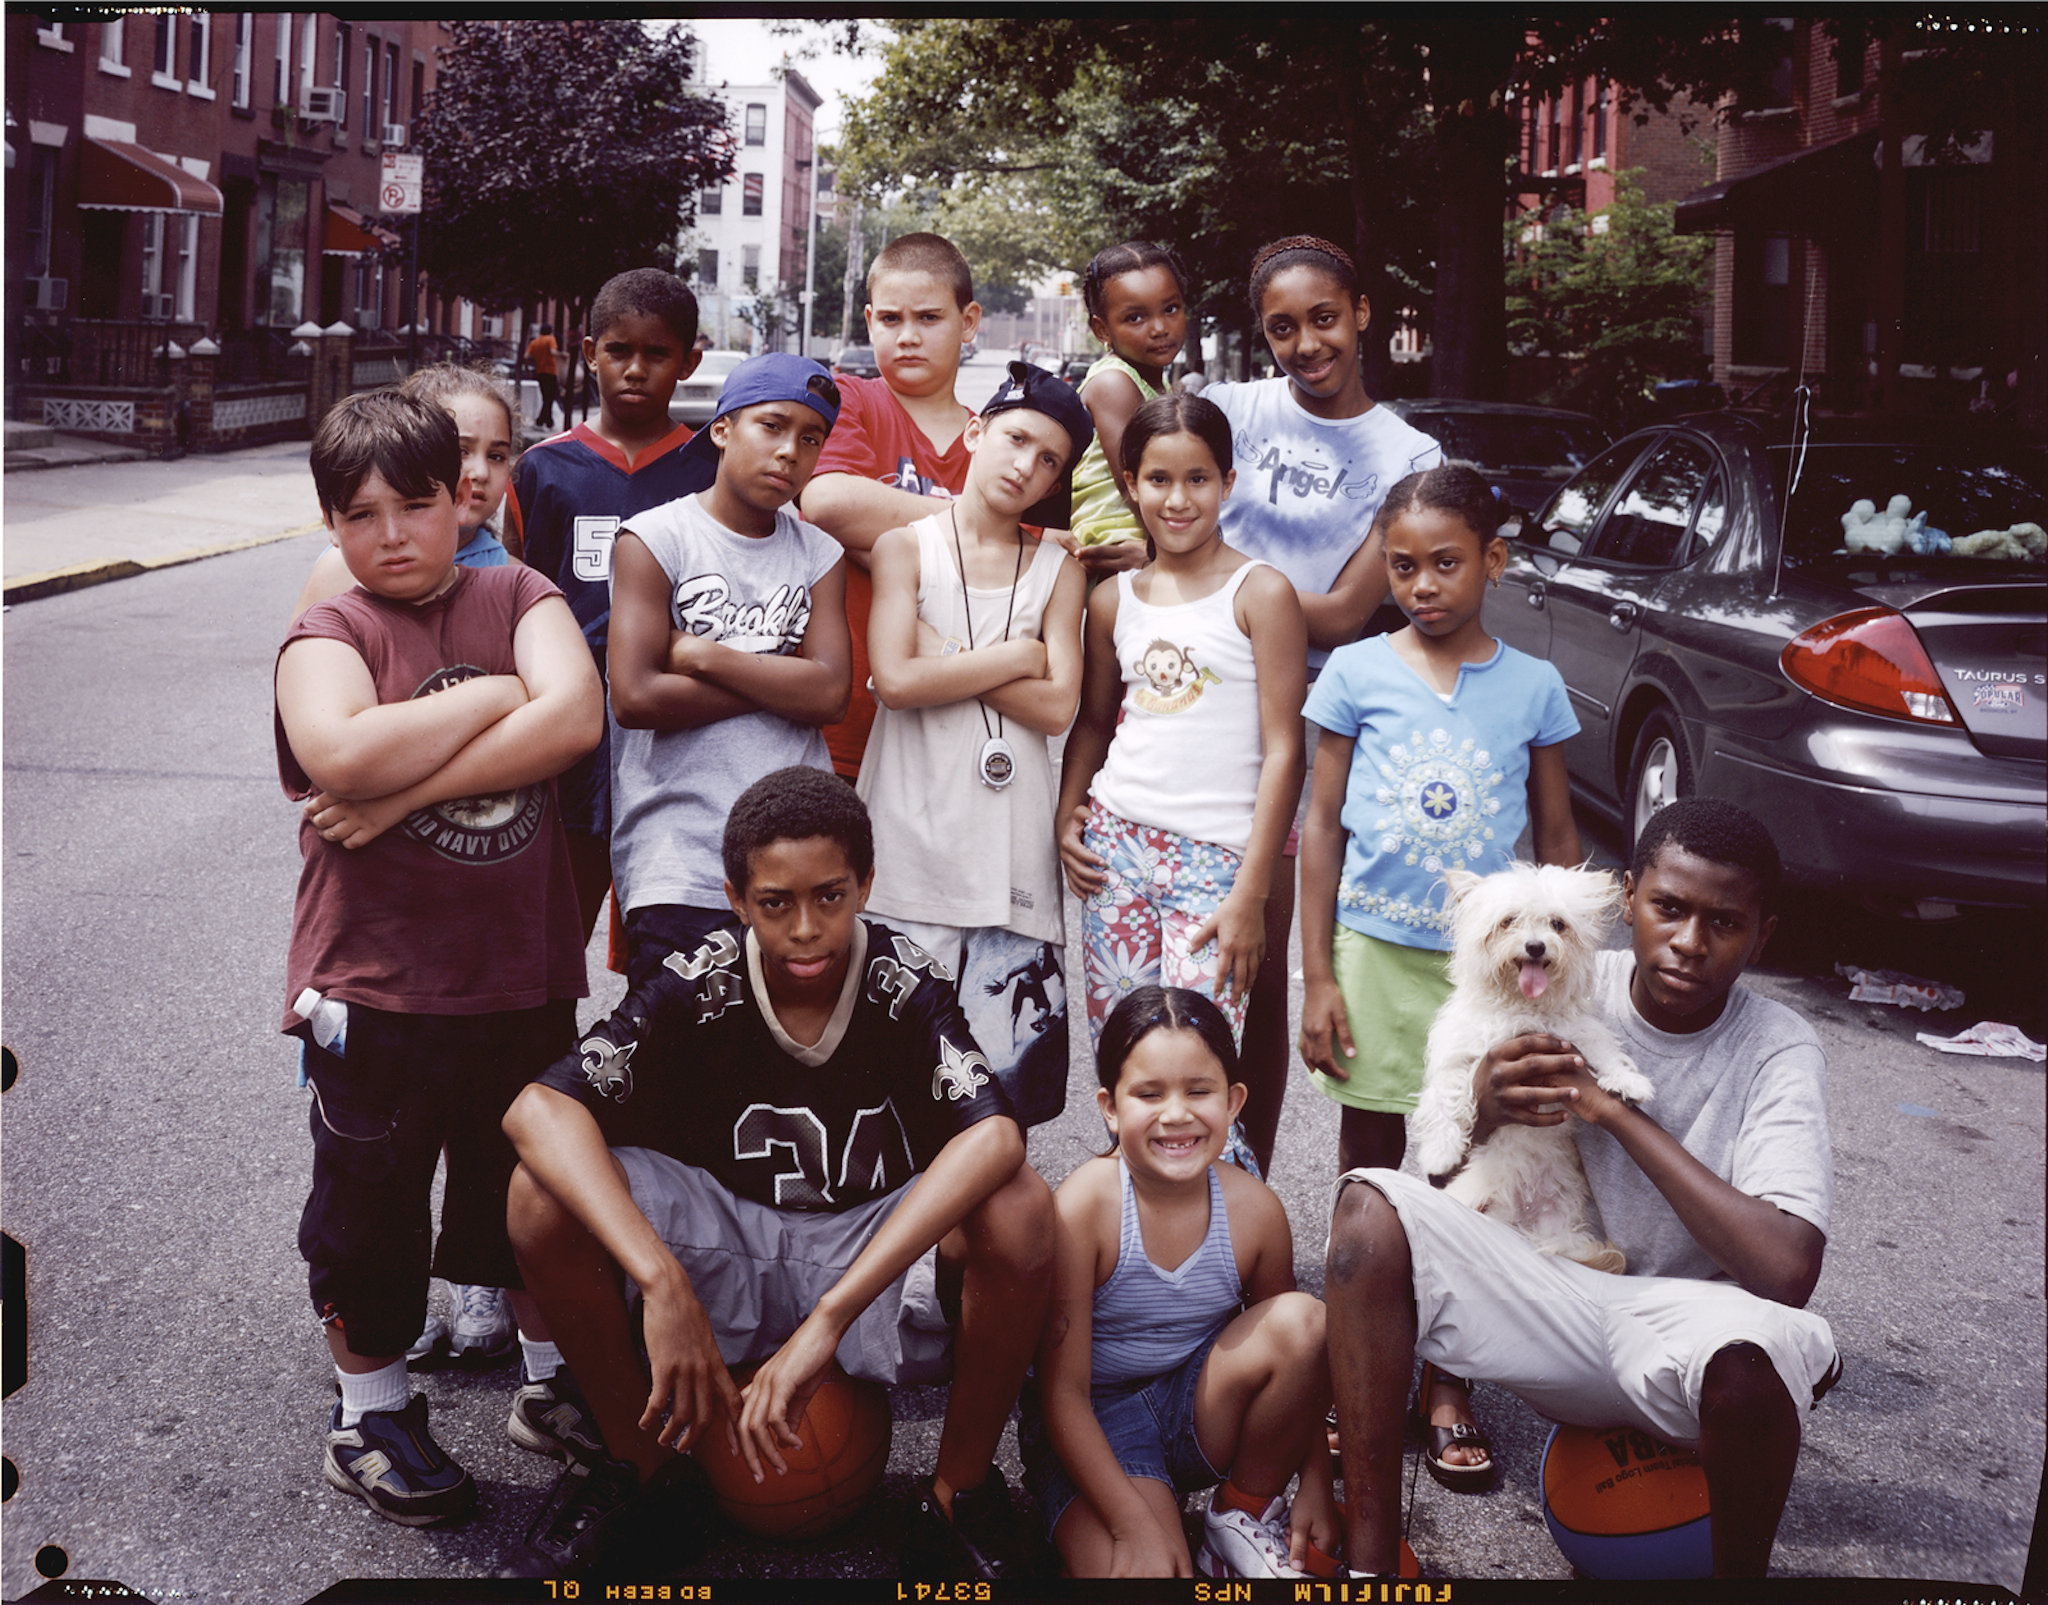 Kids from 8th st. Brooklyn, NY